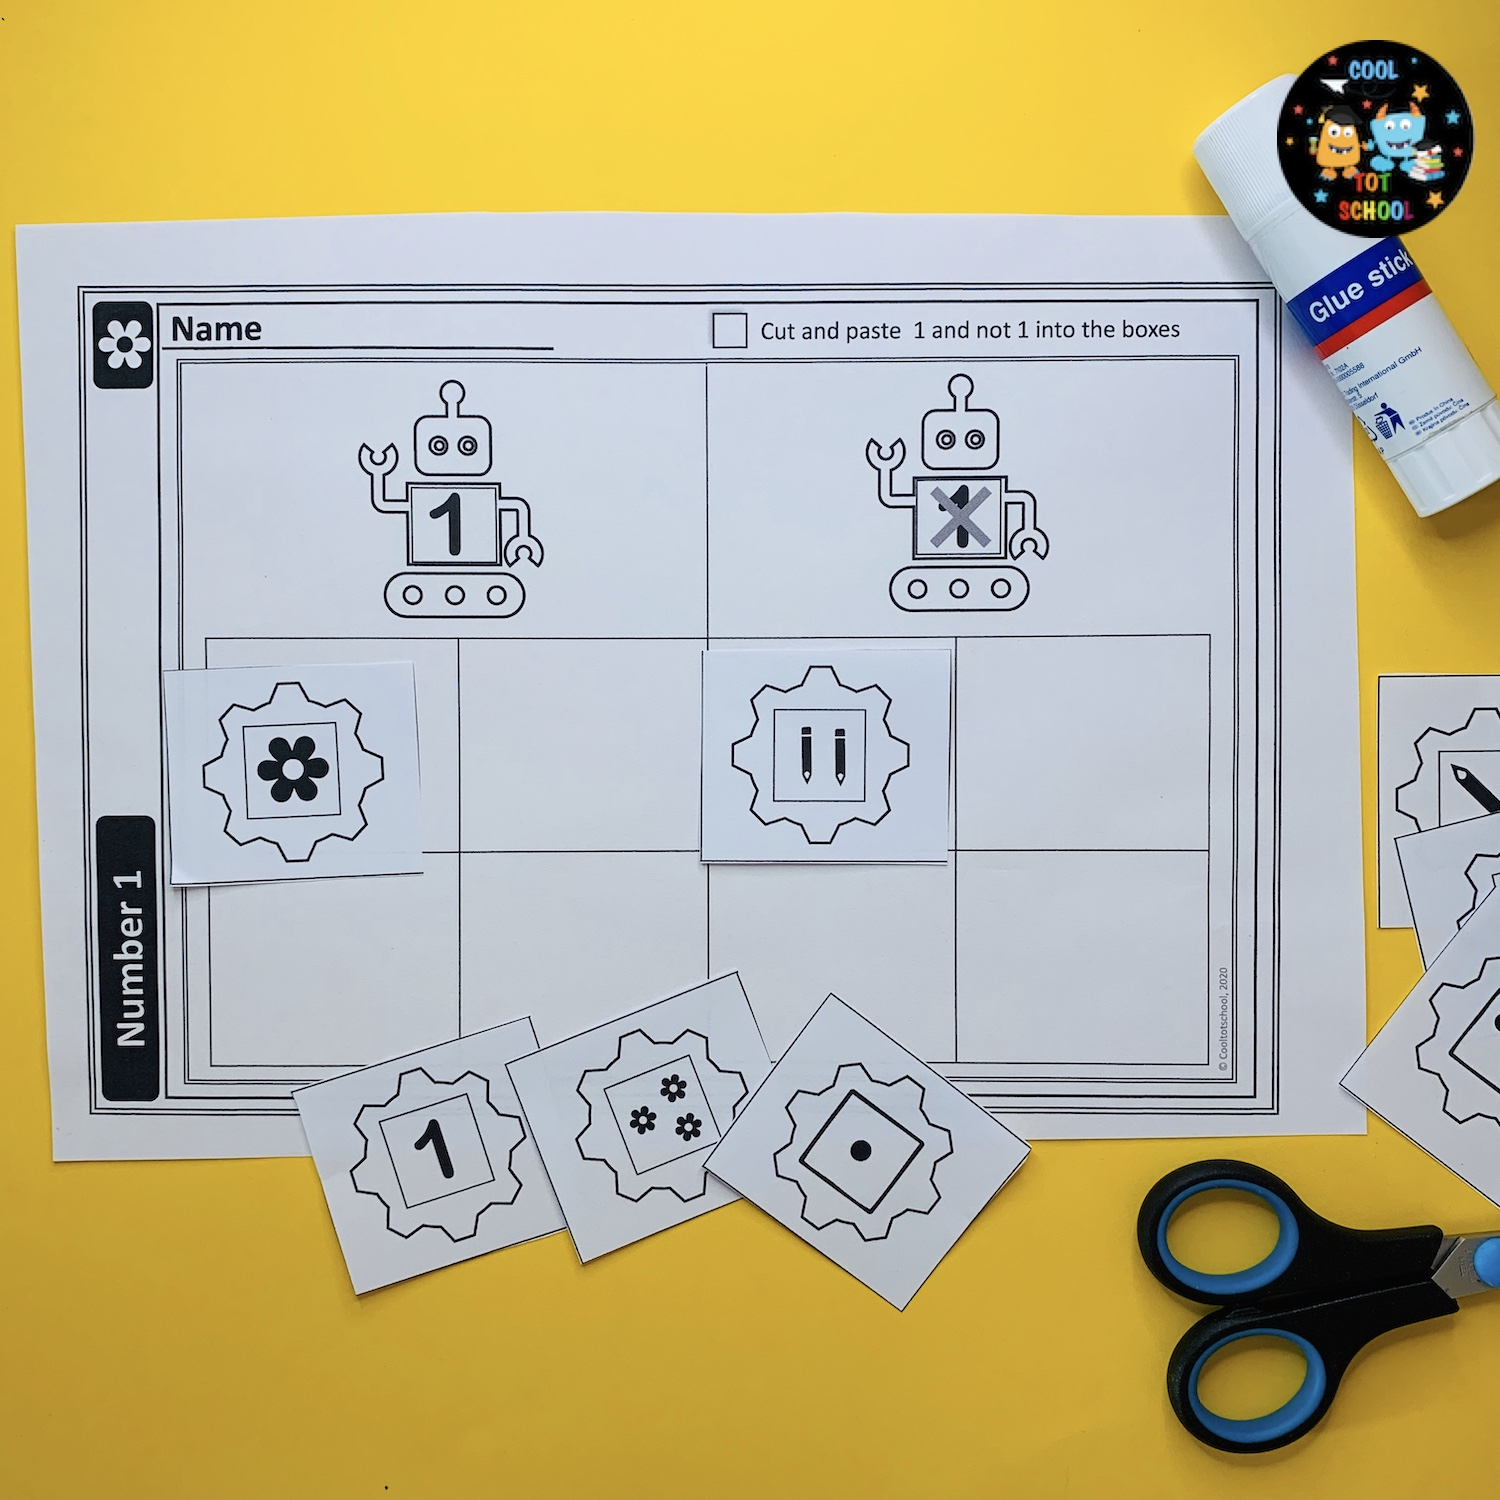 preschool-math-worksheets-to-cut-and-paste-number-1-and-many